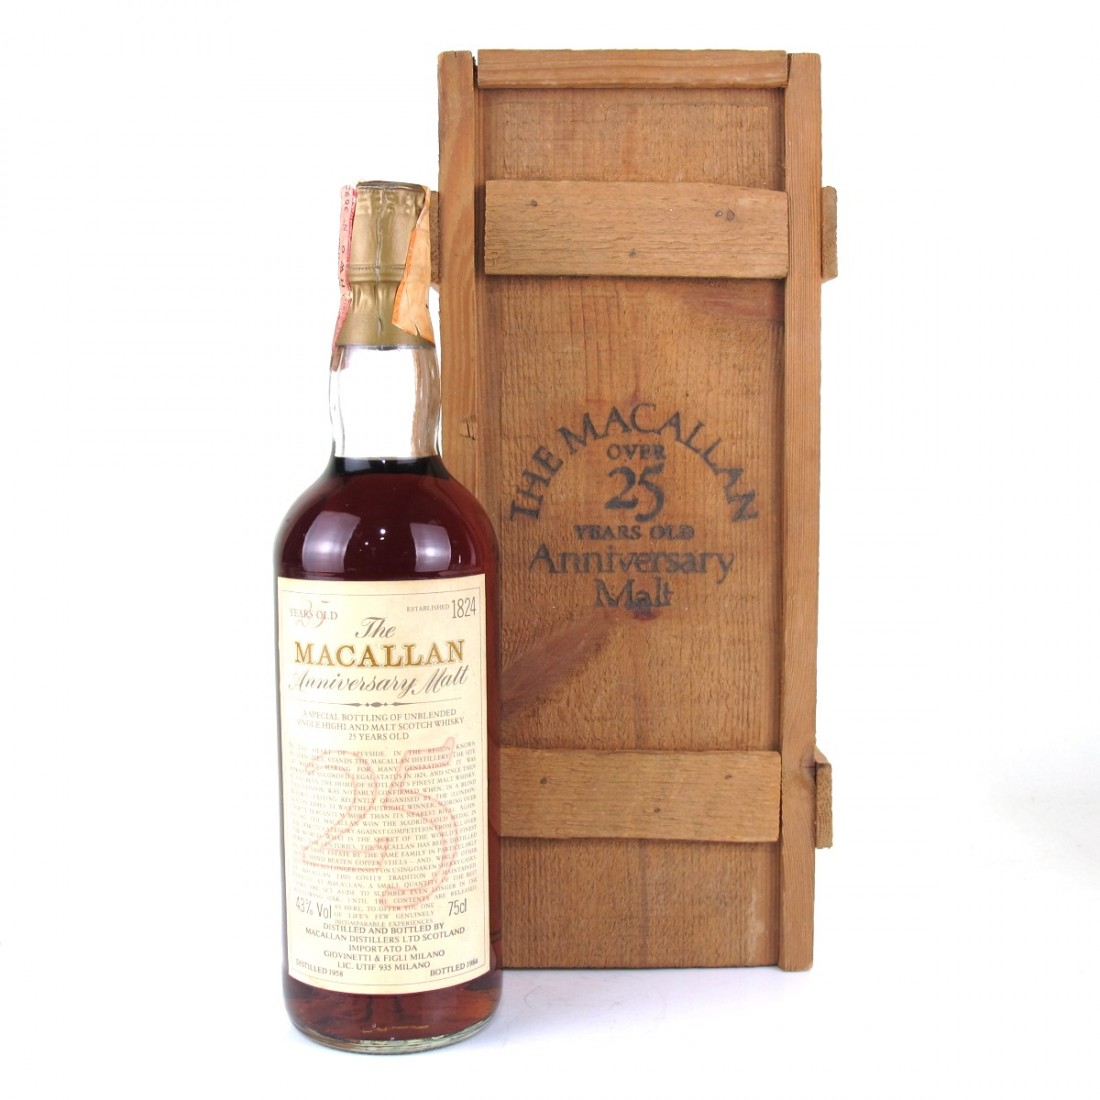 Macallan 1958 Anniversary Malt 25 Year Old / Giovinetti Import